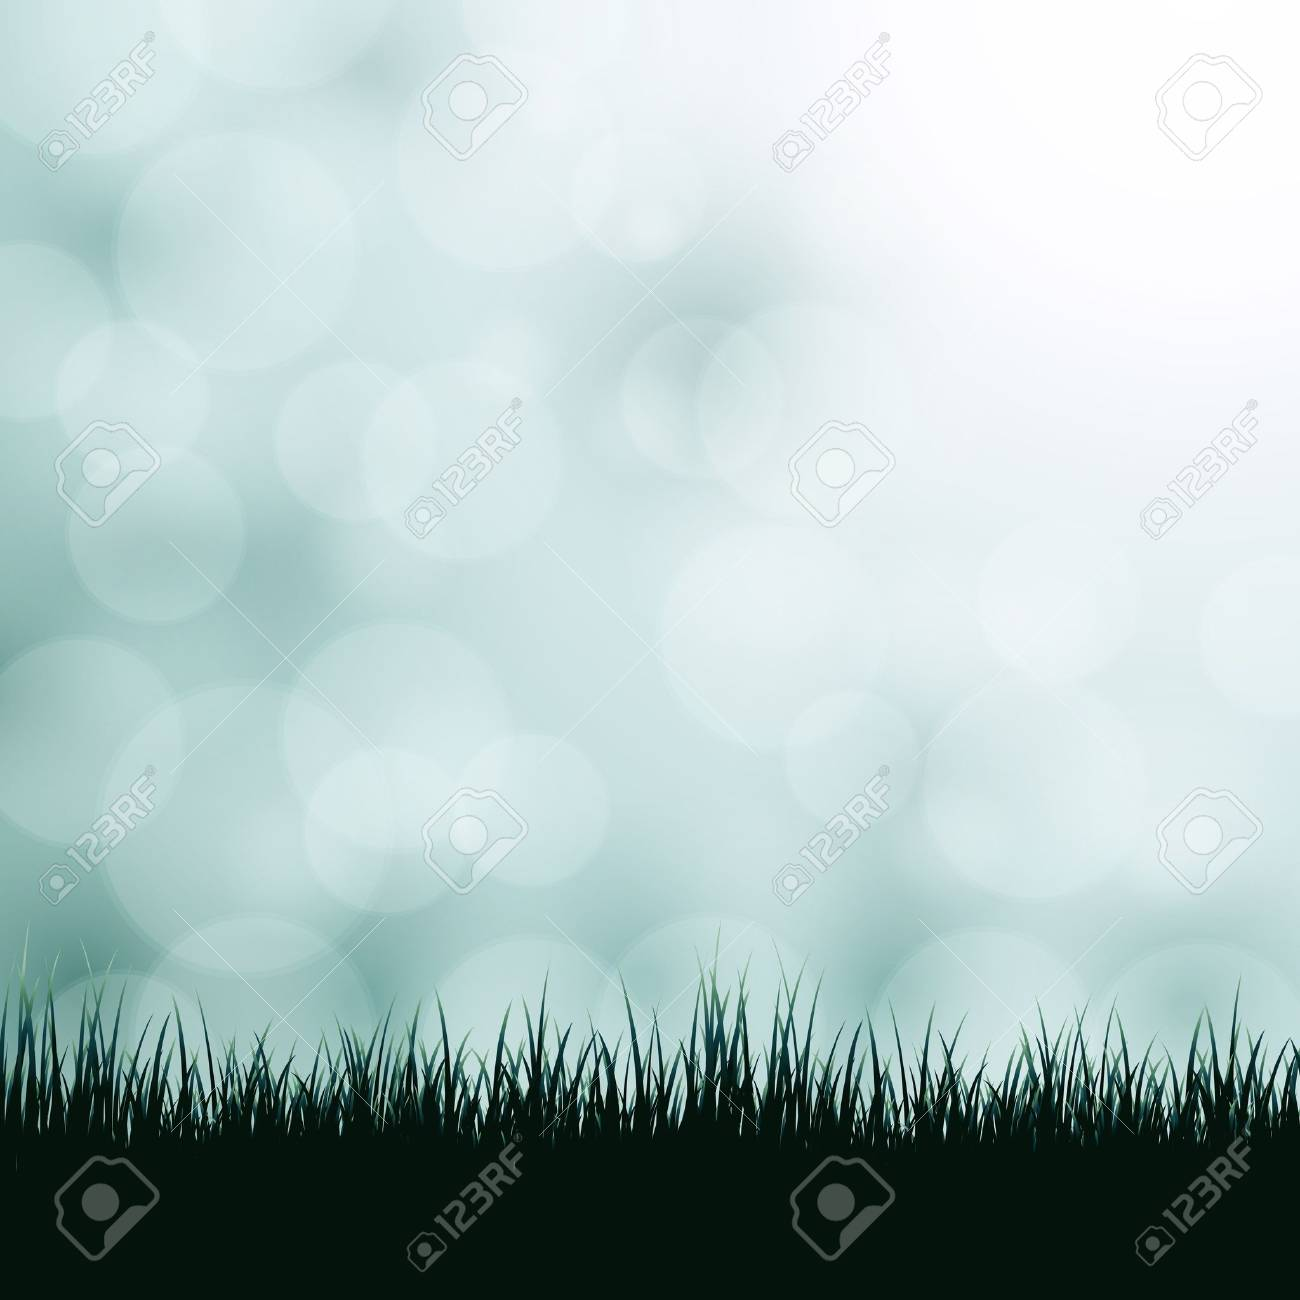 Nature background with grass and bokeh lights. Stock Vector - 17553696